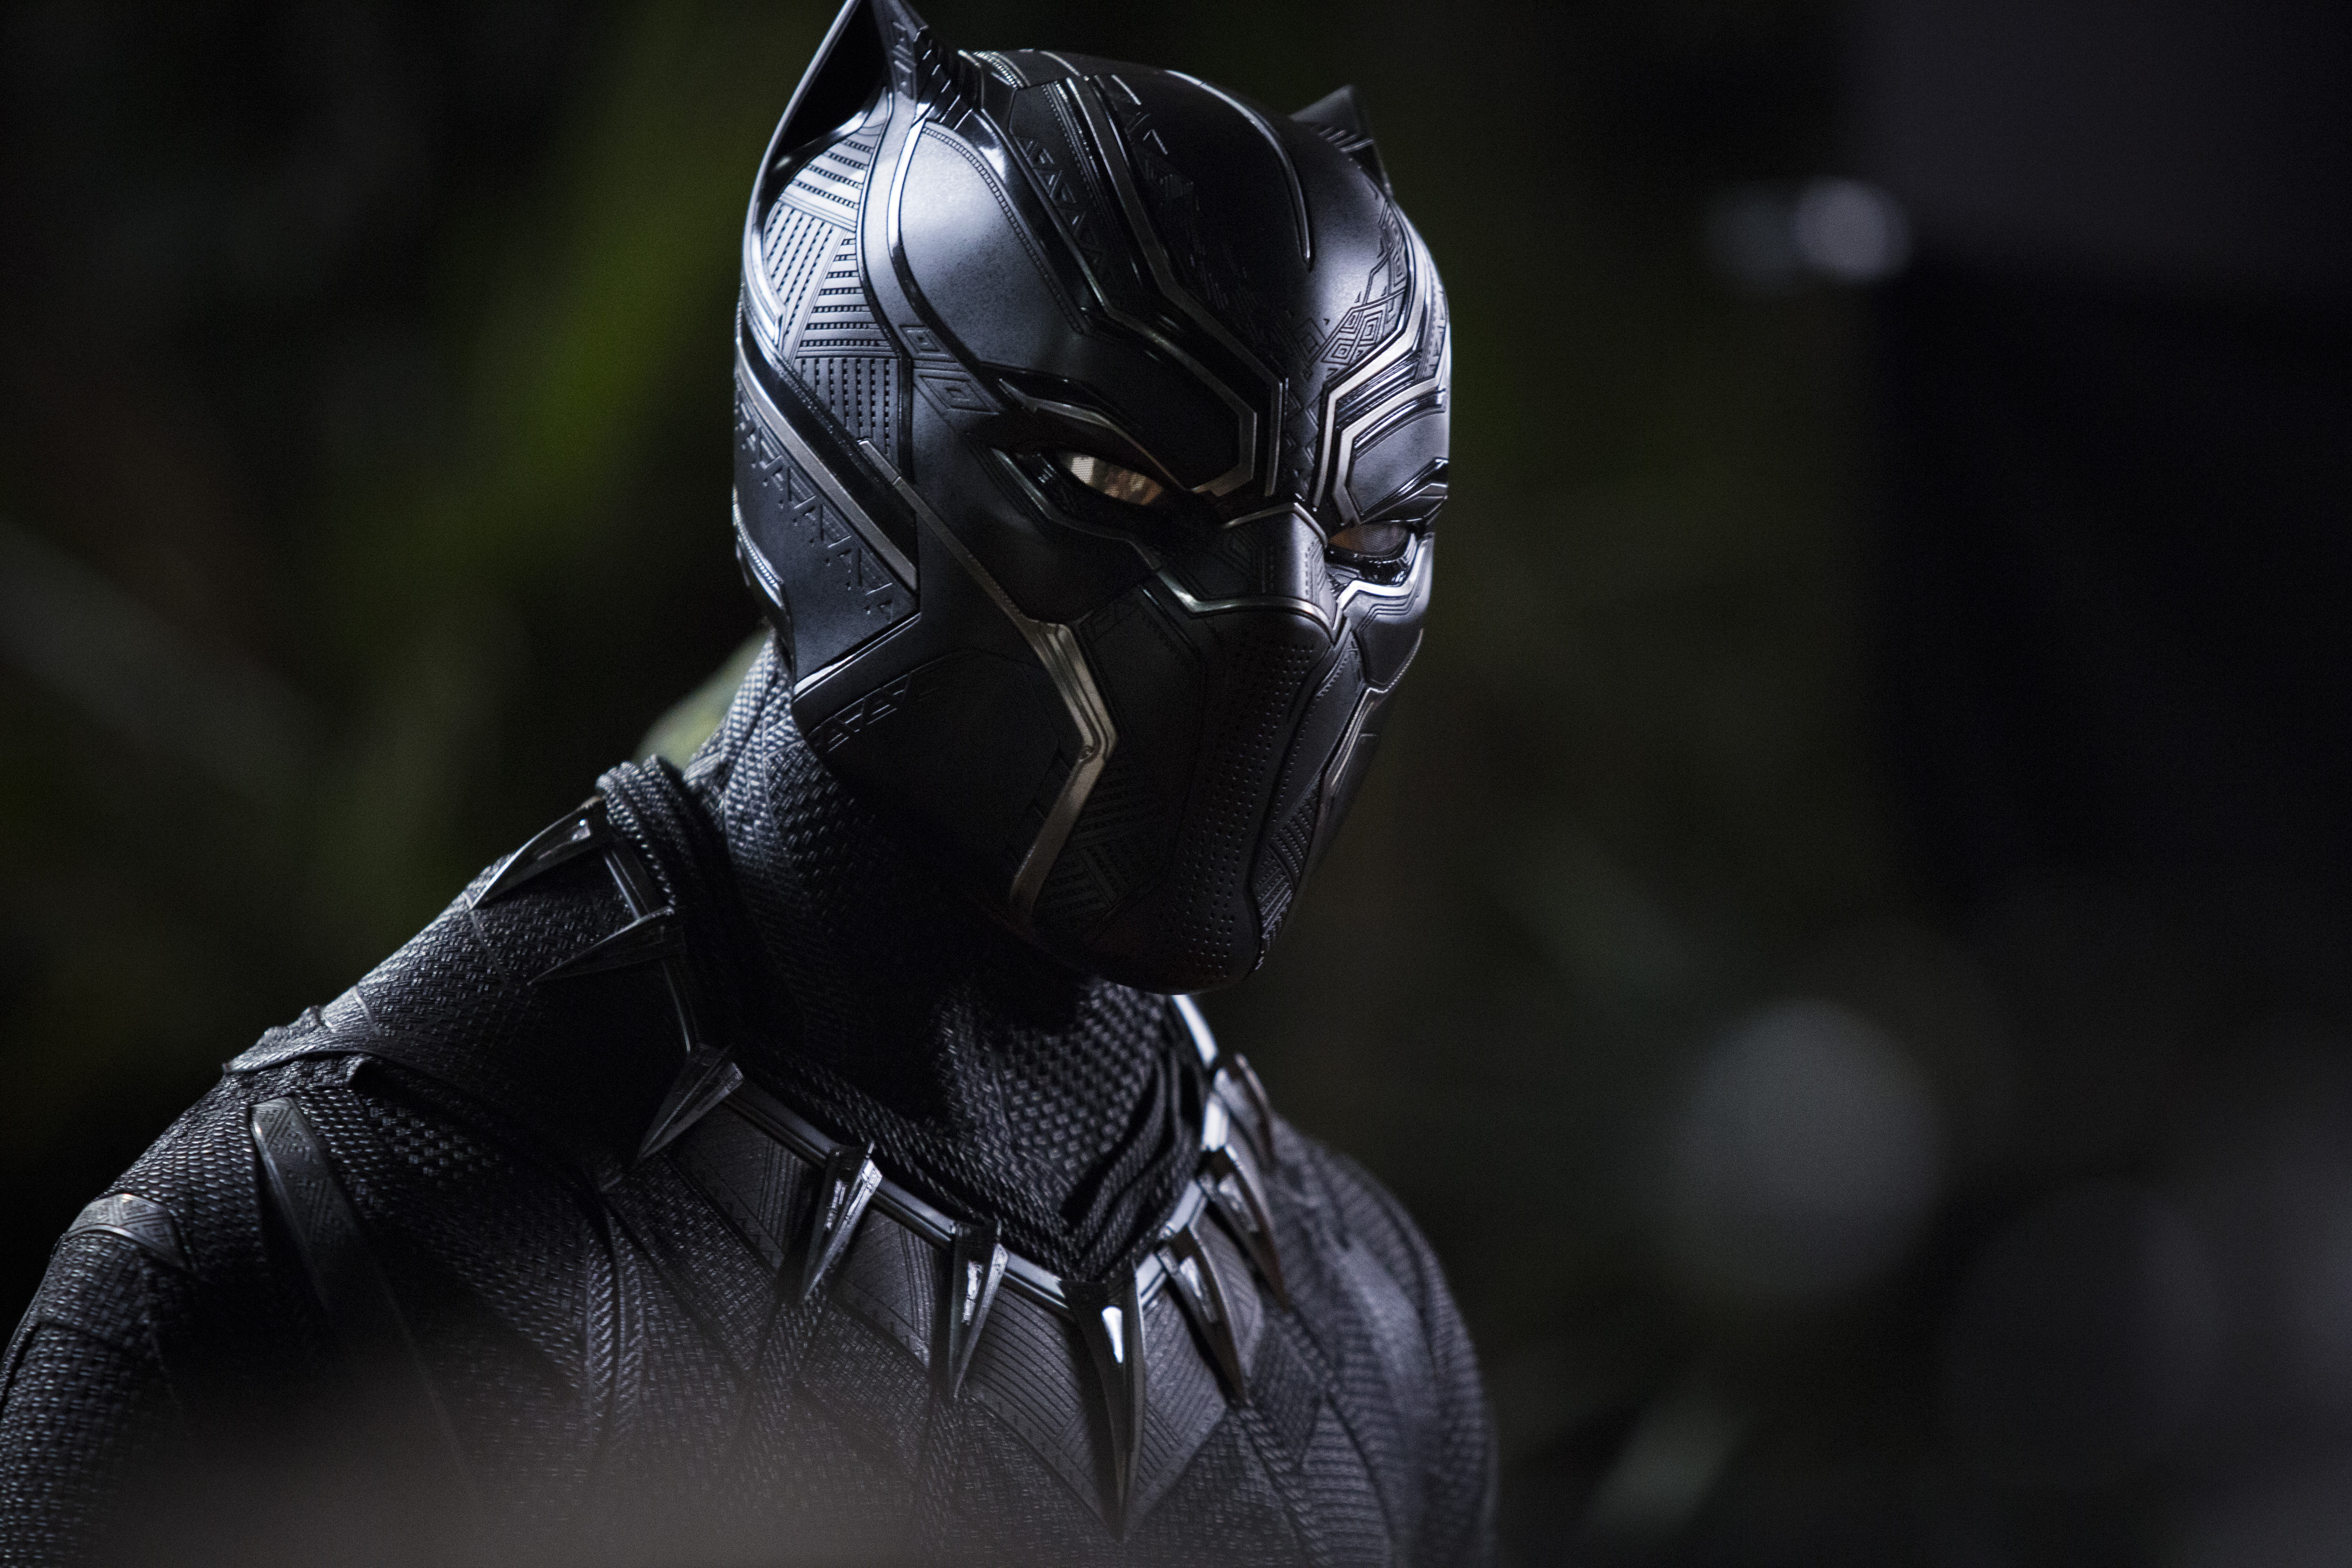 Black Panther Movie Review, Marvels Black Panther Review, Black Panther Review, The Black Panther